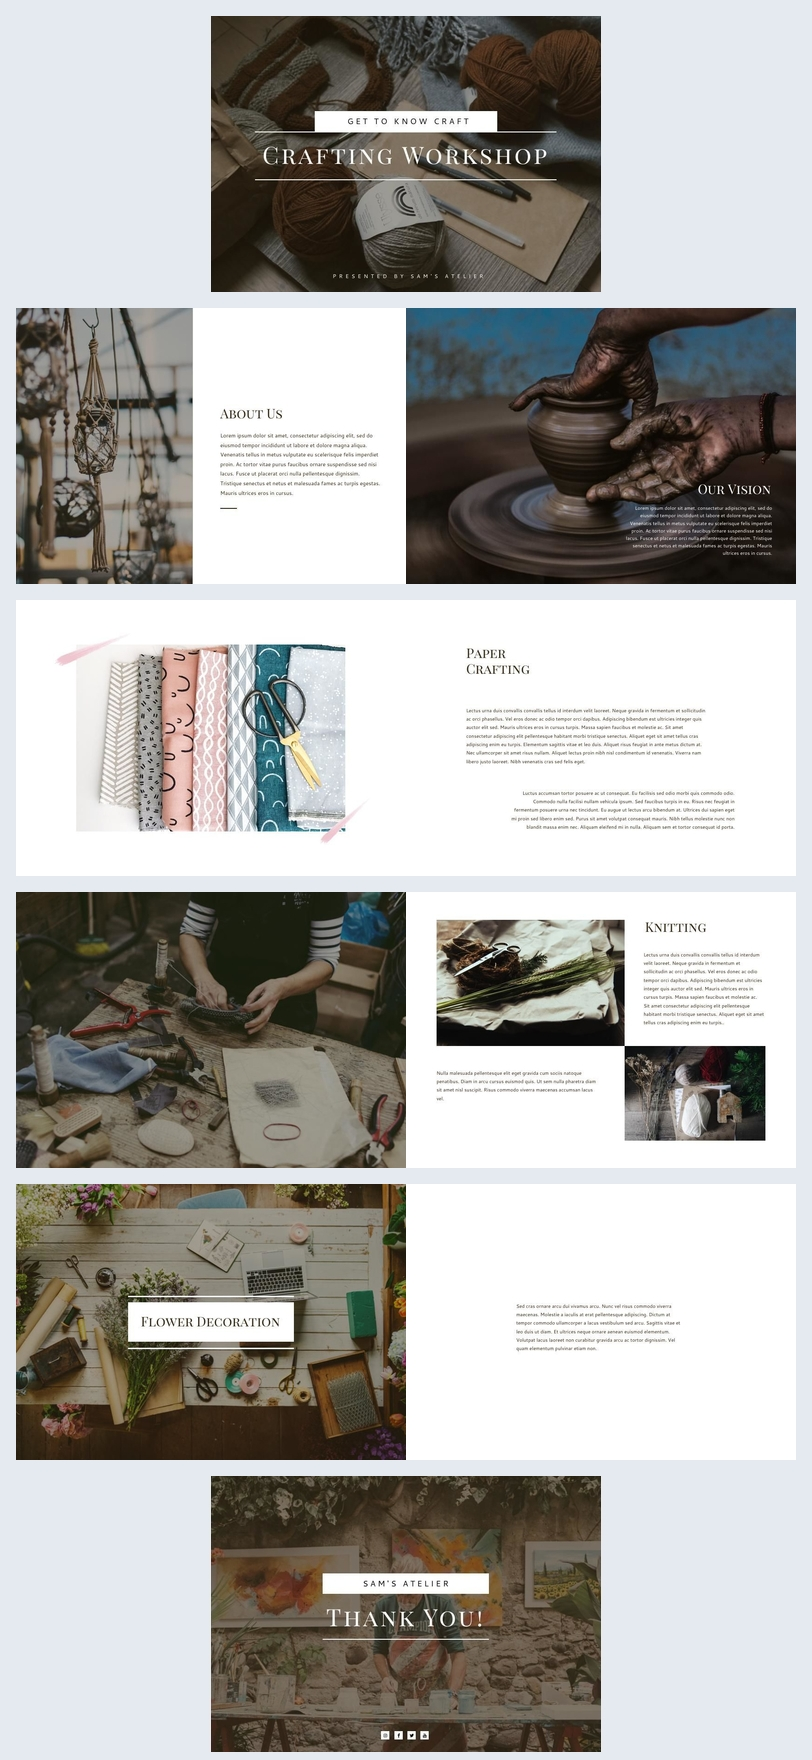 Workshop Presentation Brochure Template